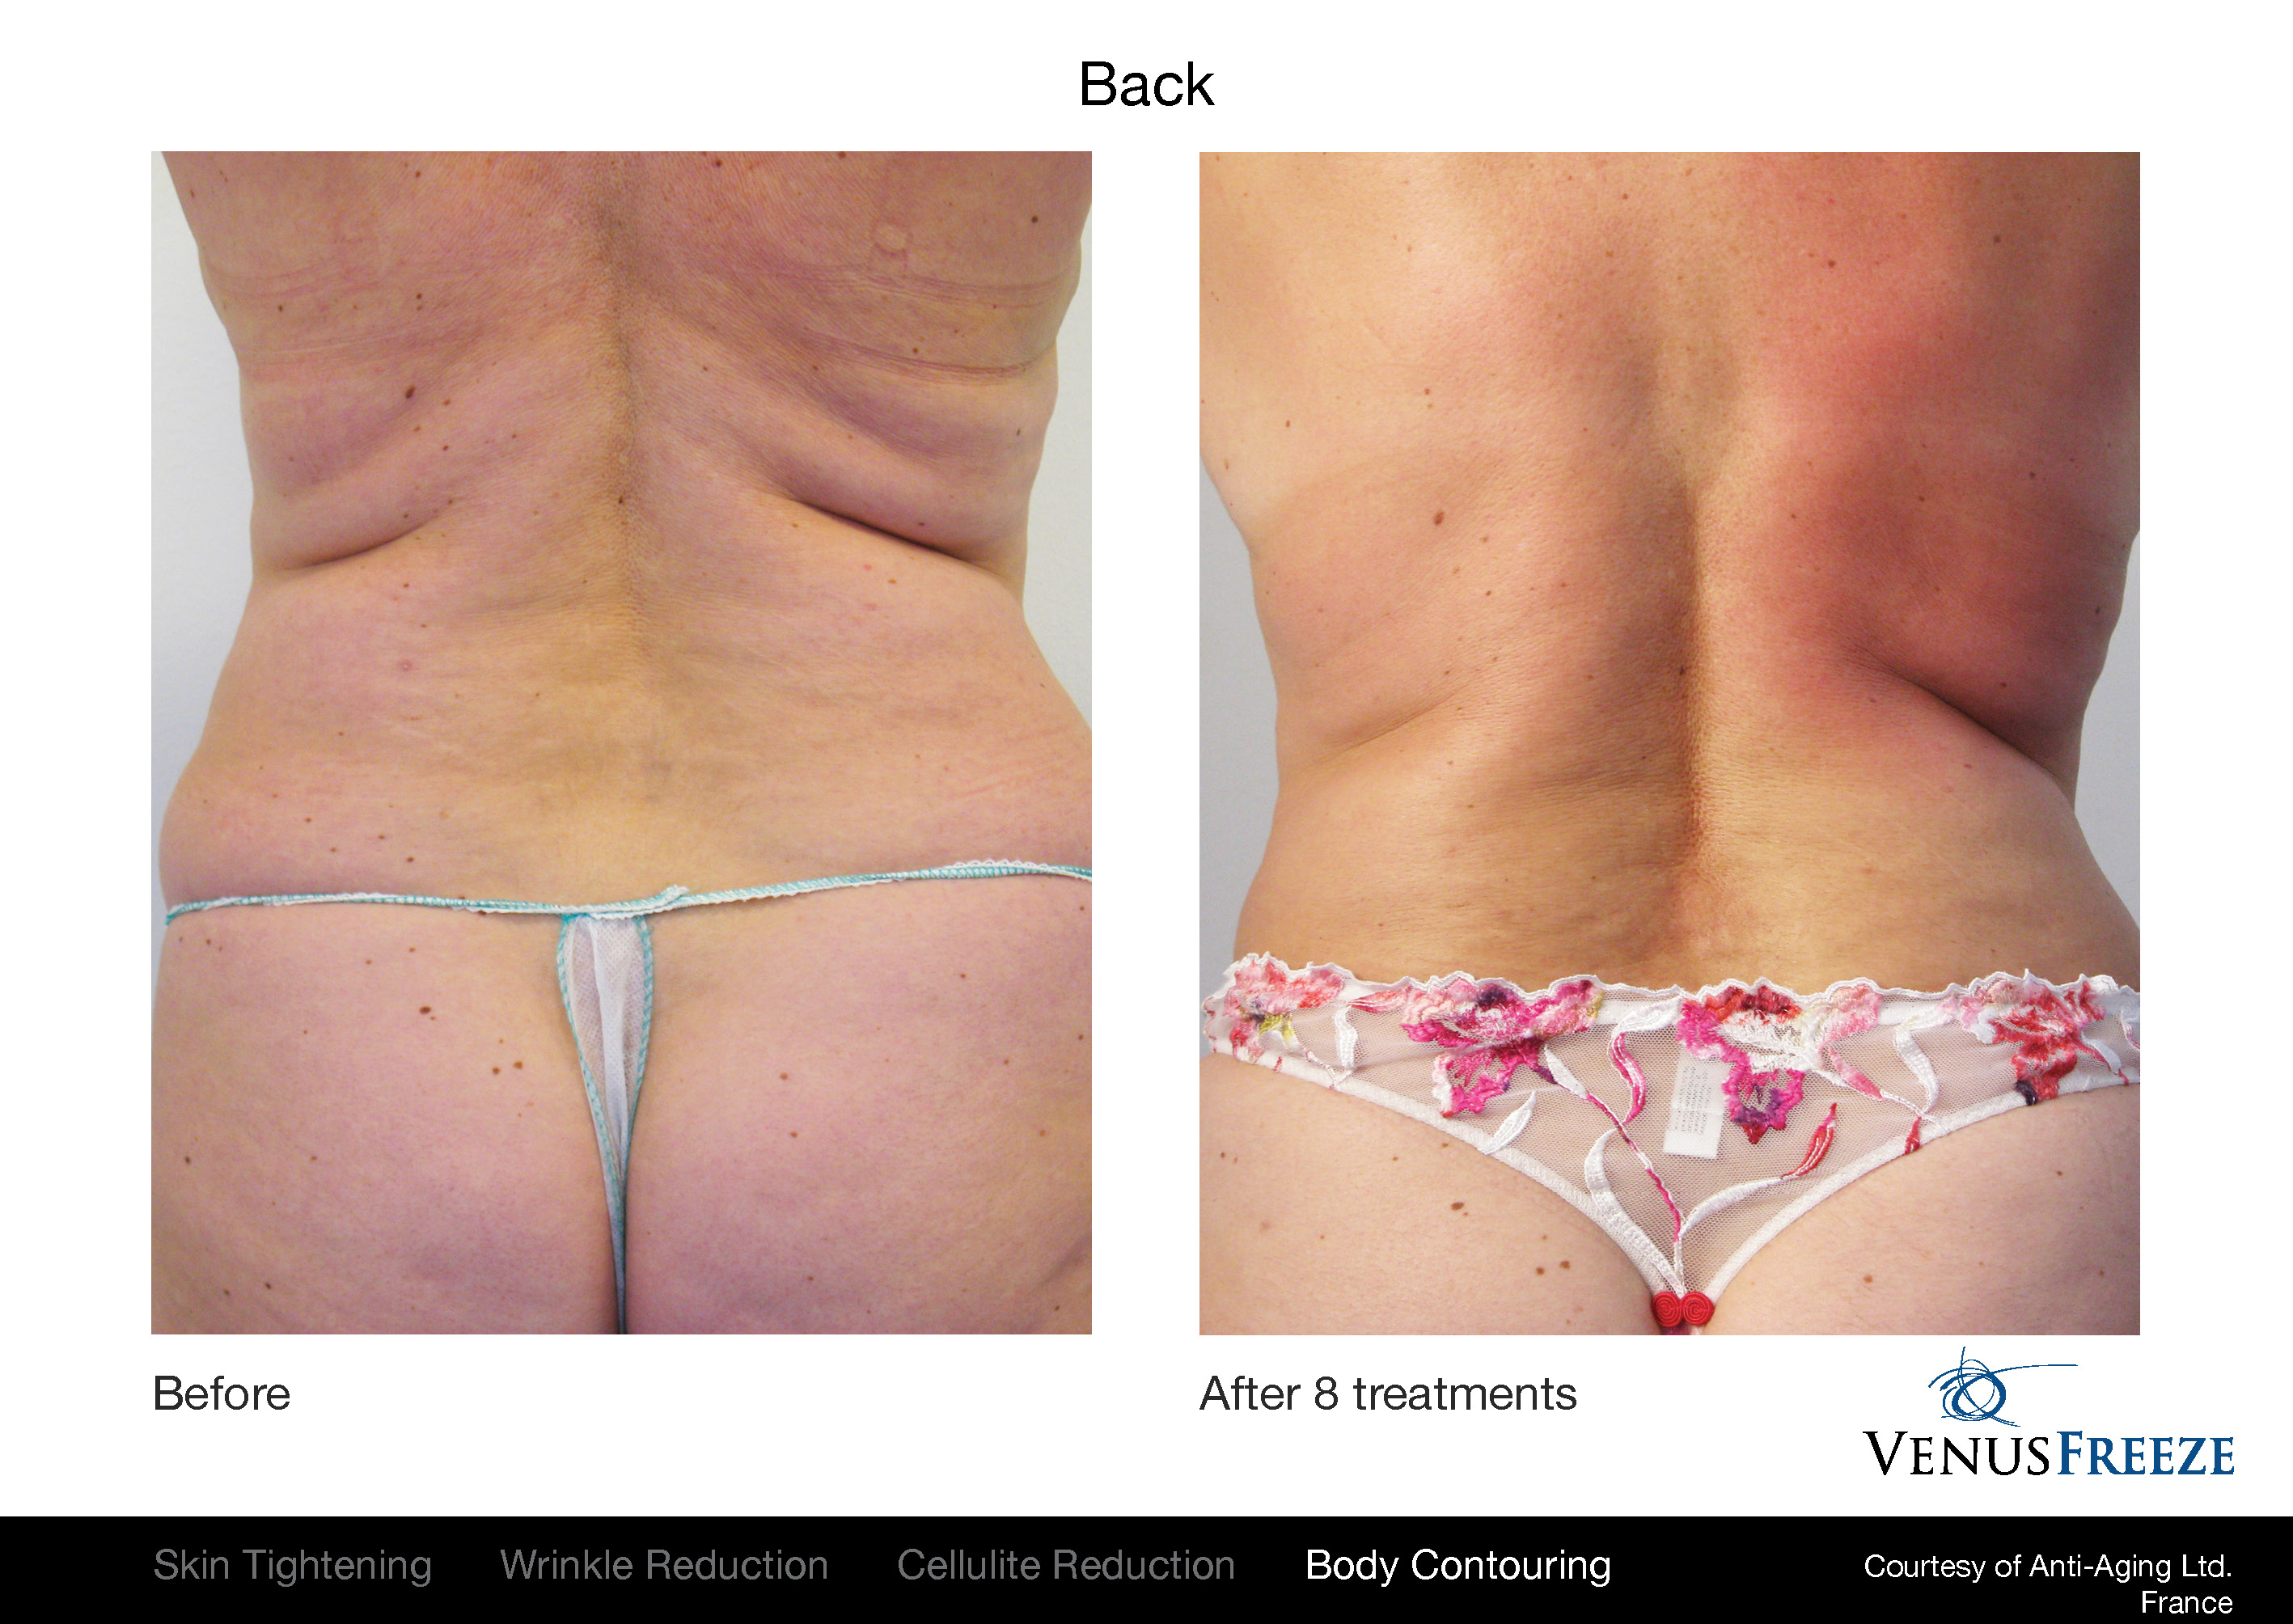 Venus Freeze before and after results on body, and back.